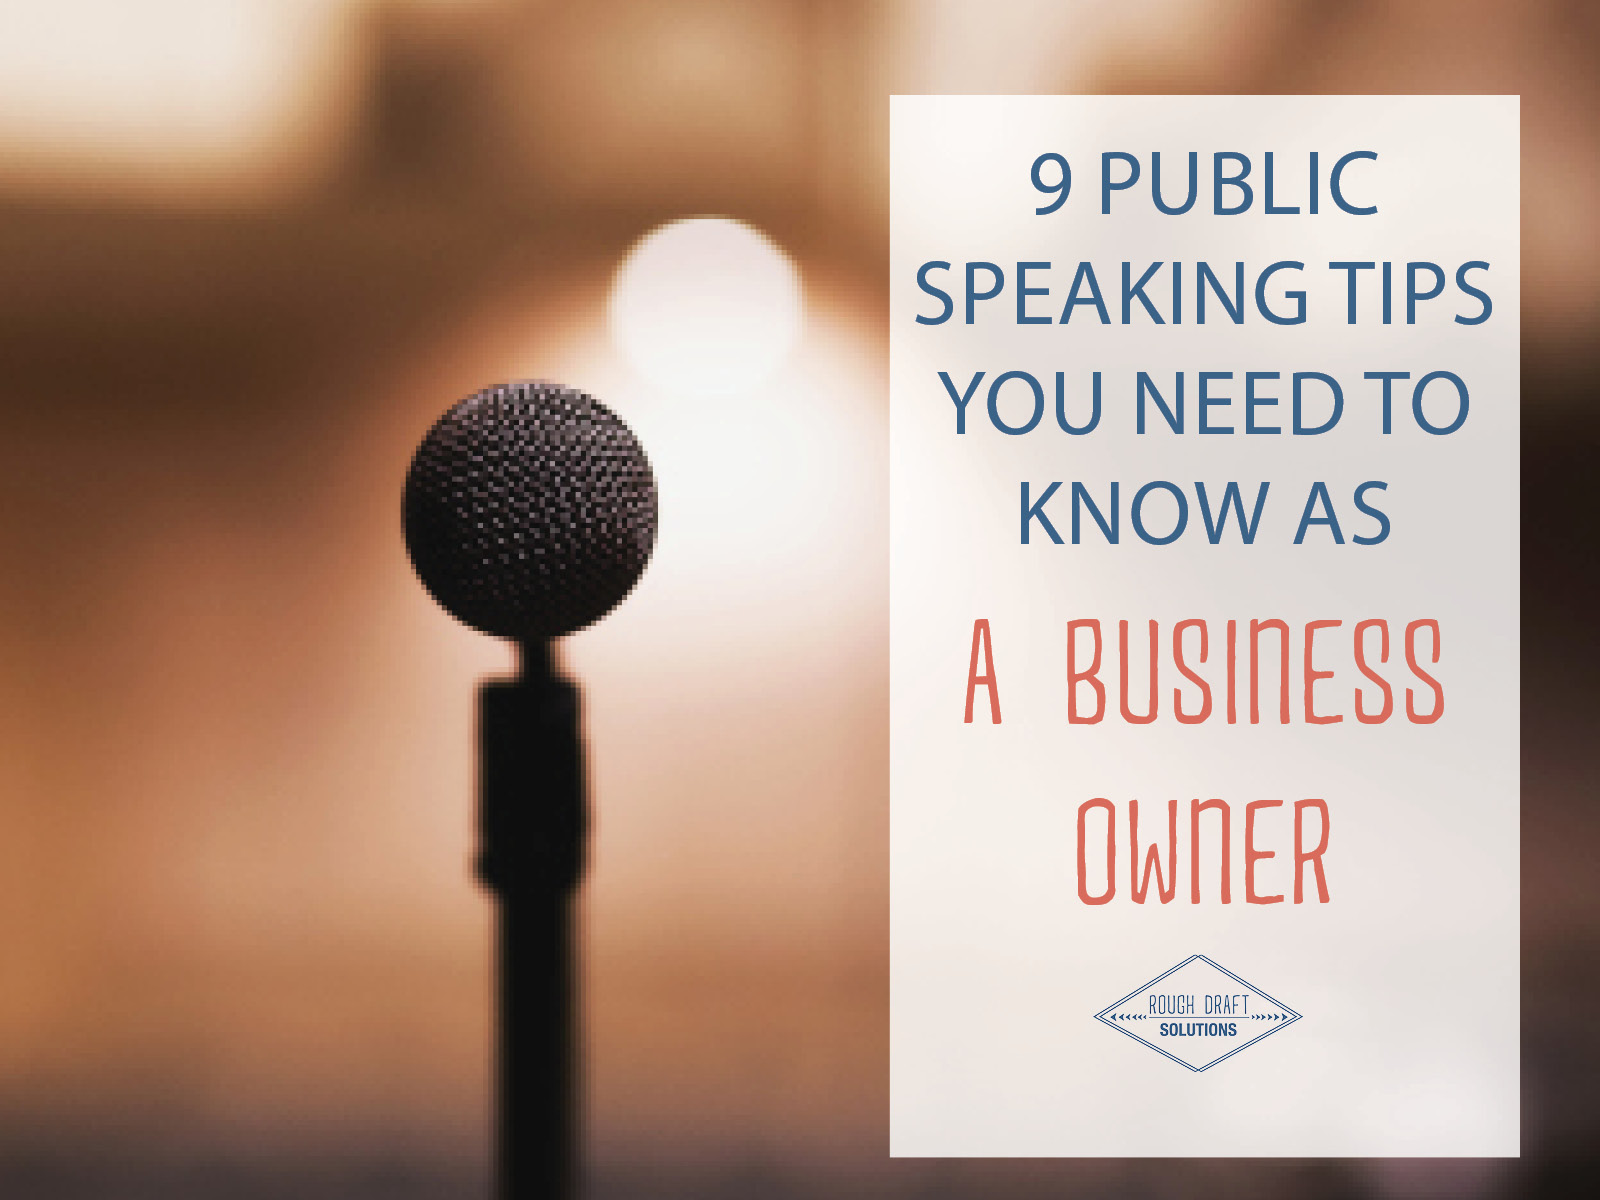 9 public speaking tips for business owners